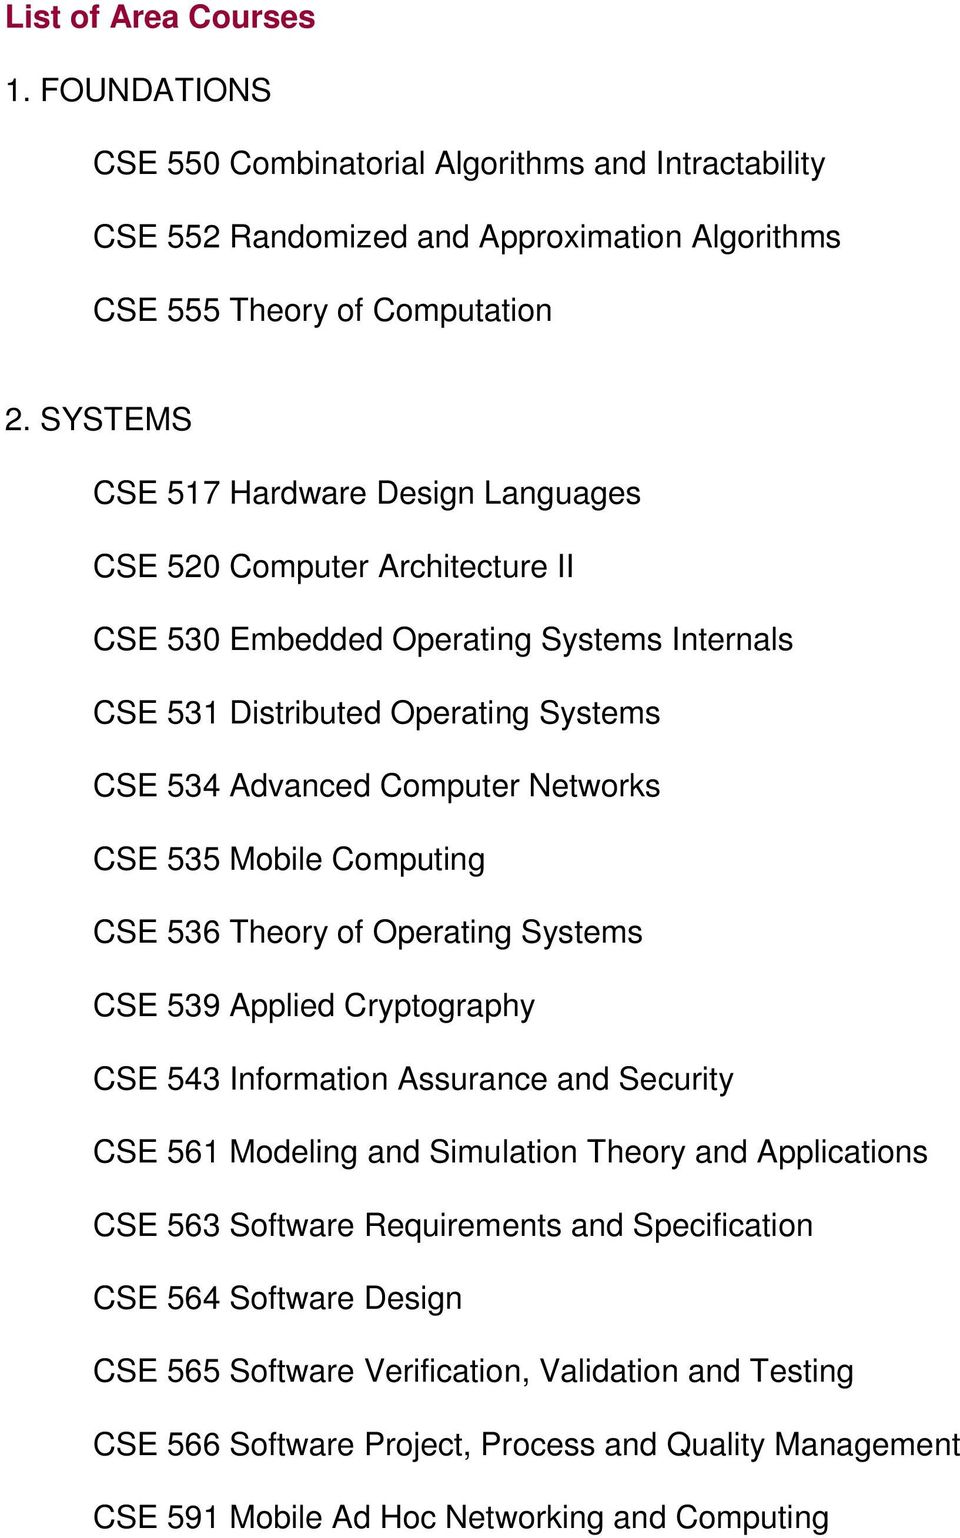 CSE 535 Mobile Computing CSE 536 Theory of Operating Systems CSE 539 Applied Cryptography CSE 543 Information Assurance and Security CSE 561 Modeling and Simulation Theory and Applications CSE